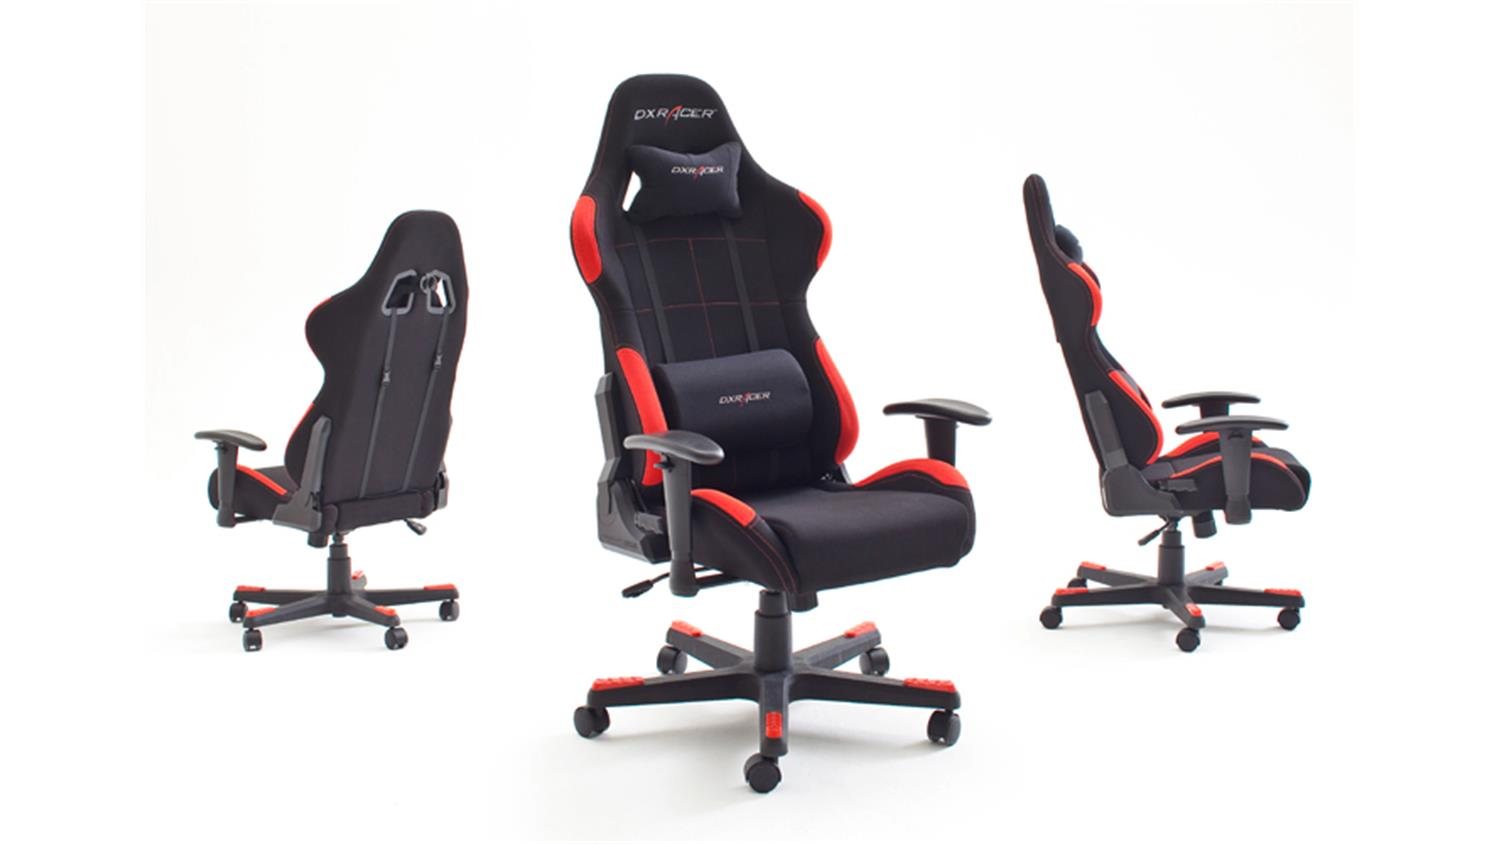 schreibtischstuhl b rostuhl dx racer 1 stoff schwarz rot game chair. Black Bedroom Furniture Sets. Home Design Ideas